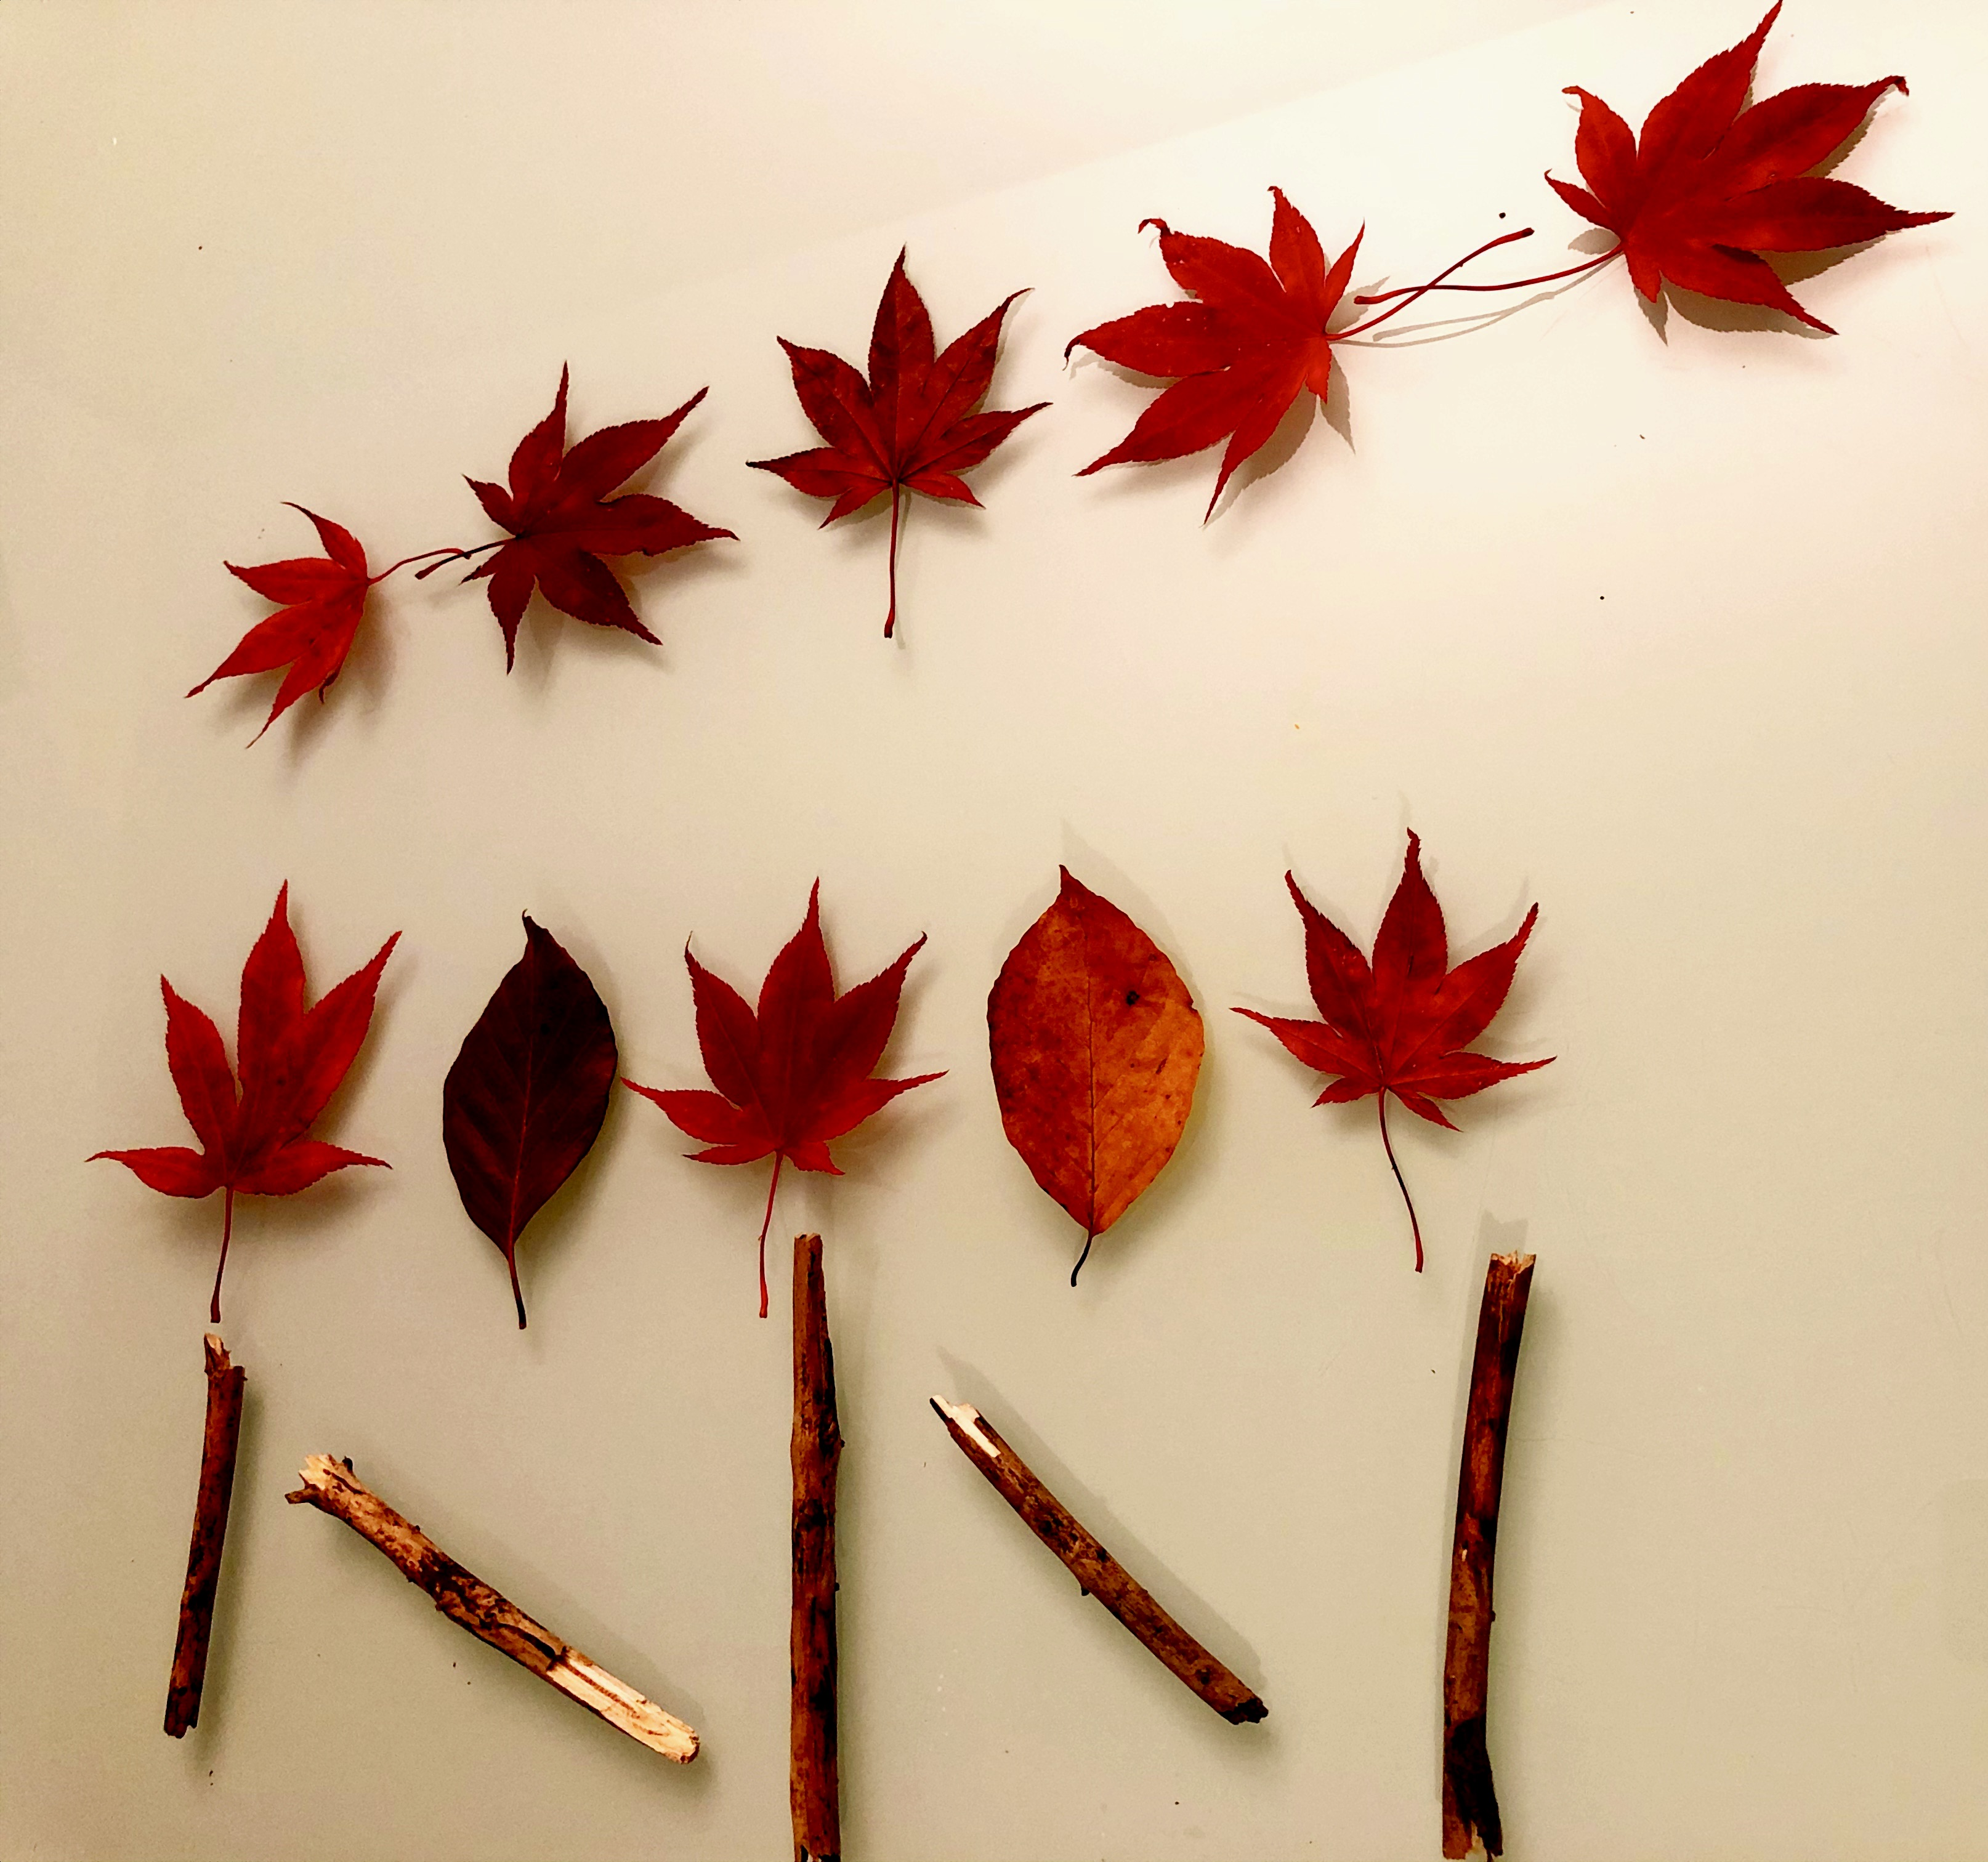 pattern recognition with leaves and sticks